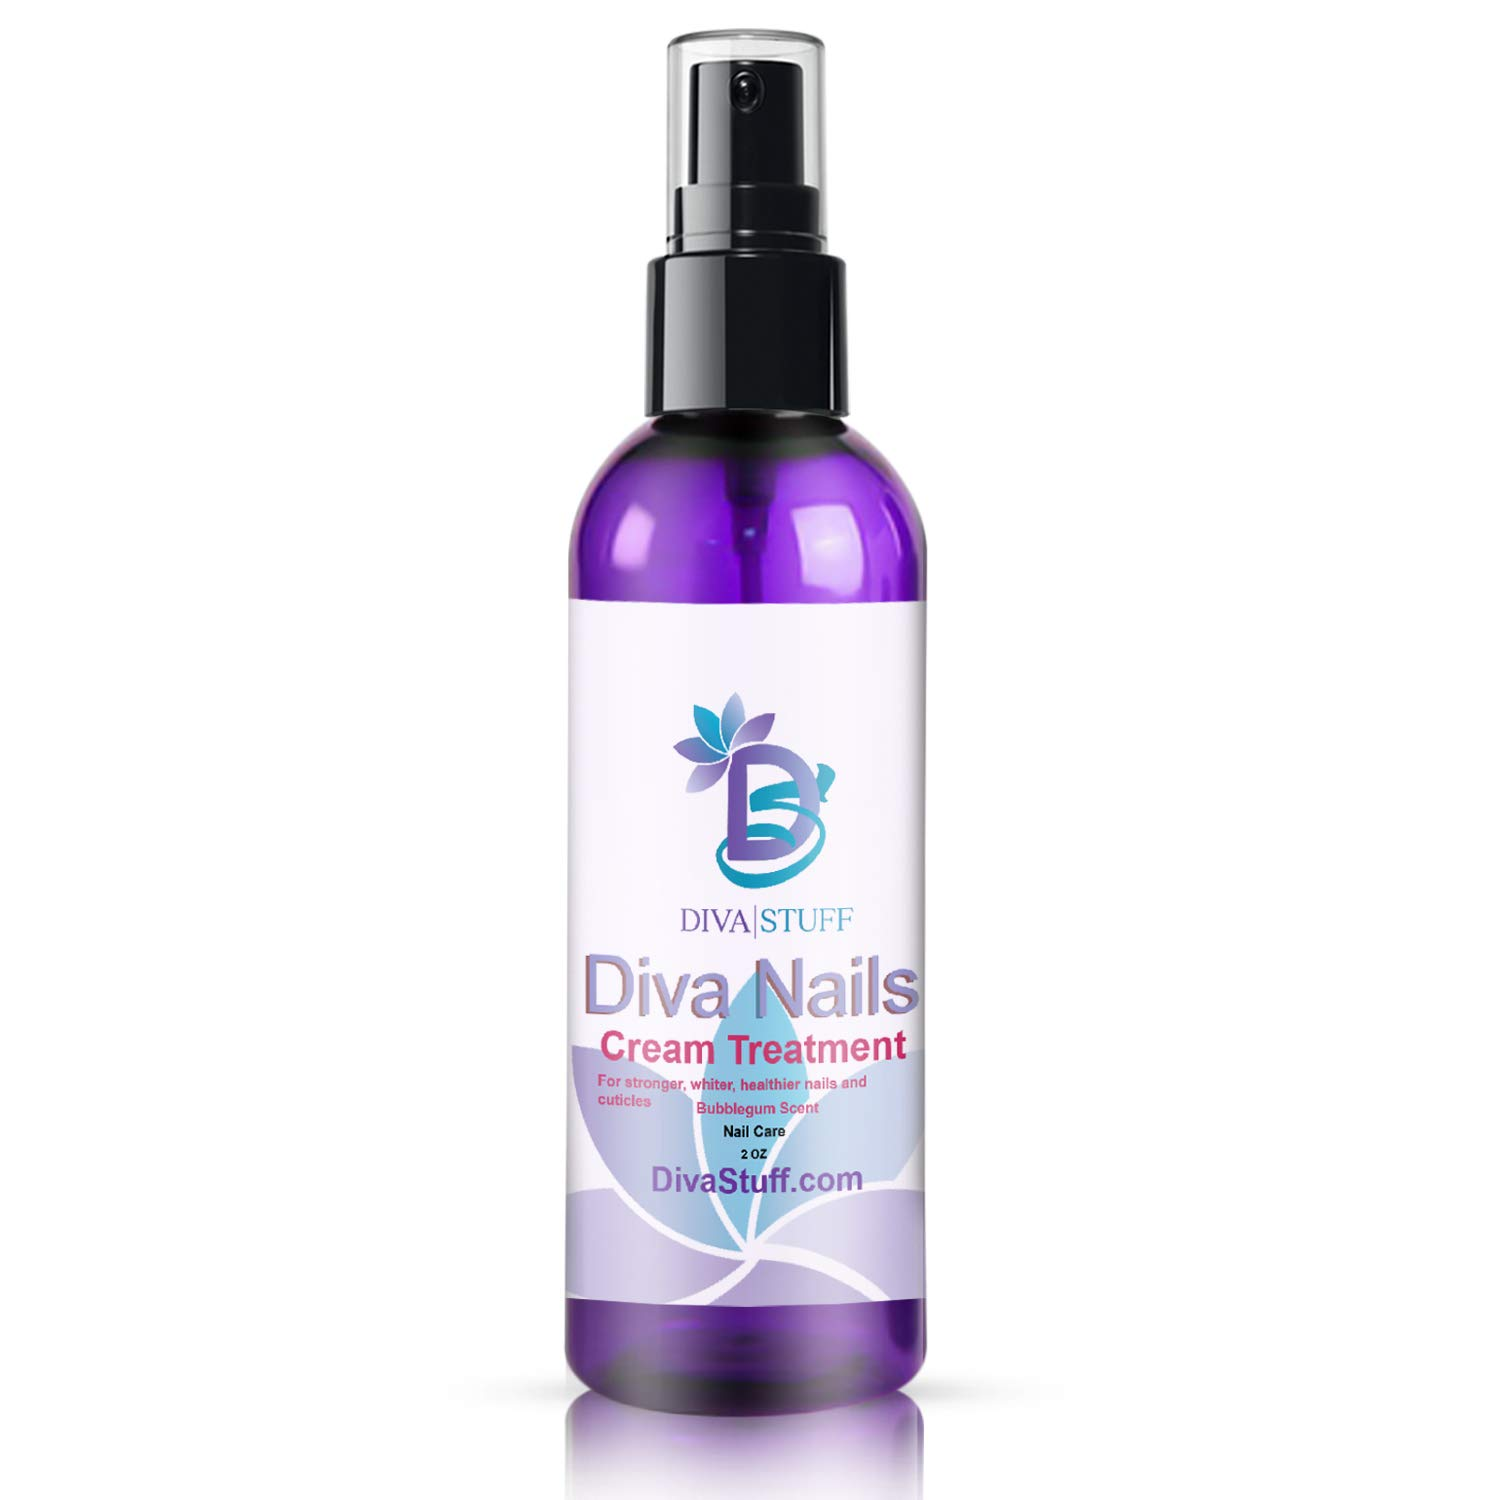 Diva Stuff Diva Nails Cream Treatment, For Stronger & Healthier Cuticles, No More Chips, Cracks & Splits, Made in the USA with Safe Ingredients, Blue Bubblegum Scent, 2 fl oz by Diva Stuff